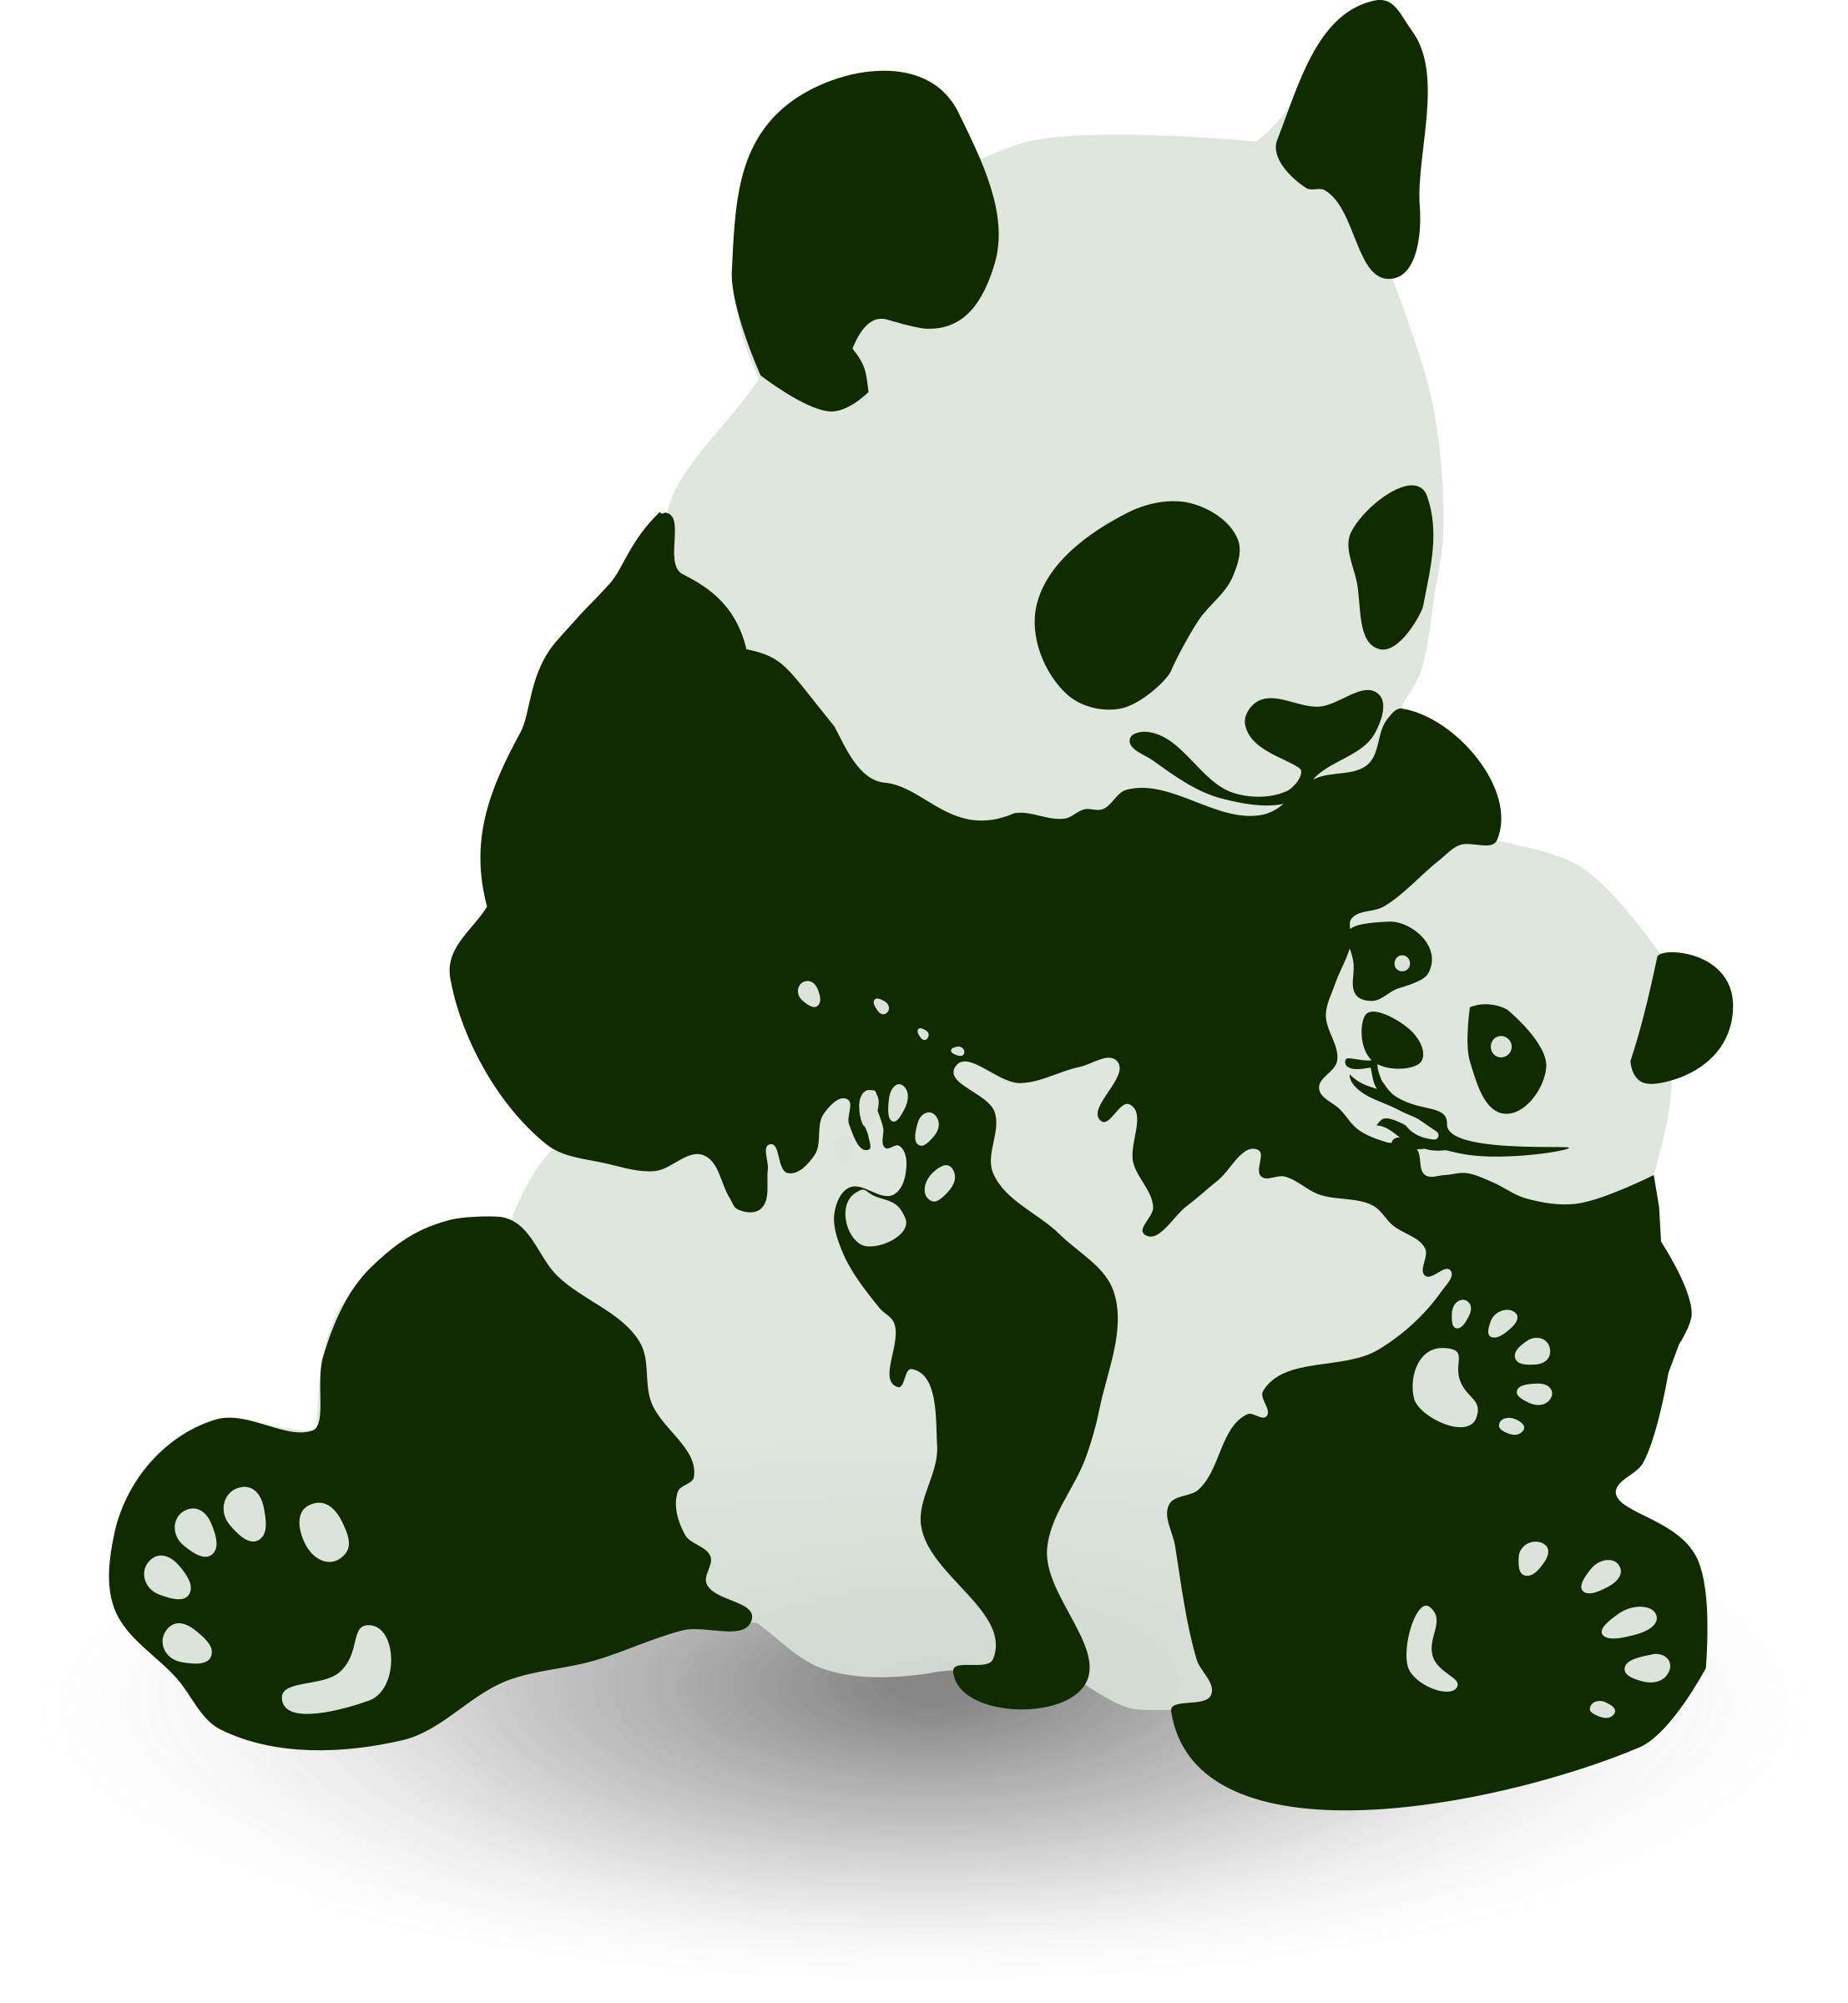 Asian panda mom with baby panda clipart picture graphic royalty free stock Free Baby Panda Cliparts, Download Free Clip Art, Free Clip Art on ... graphic royalty free stock